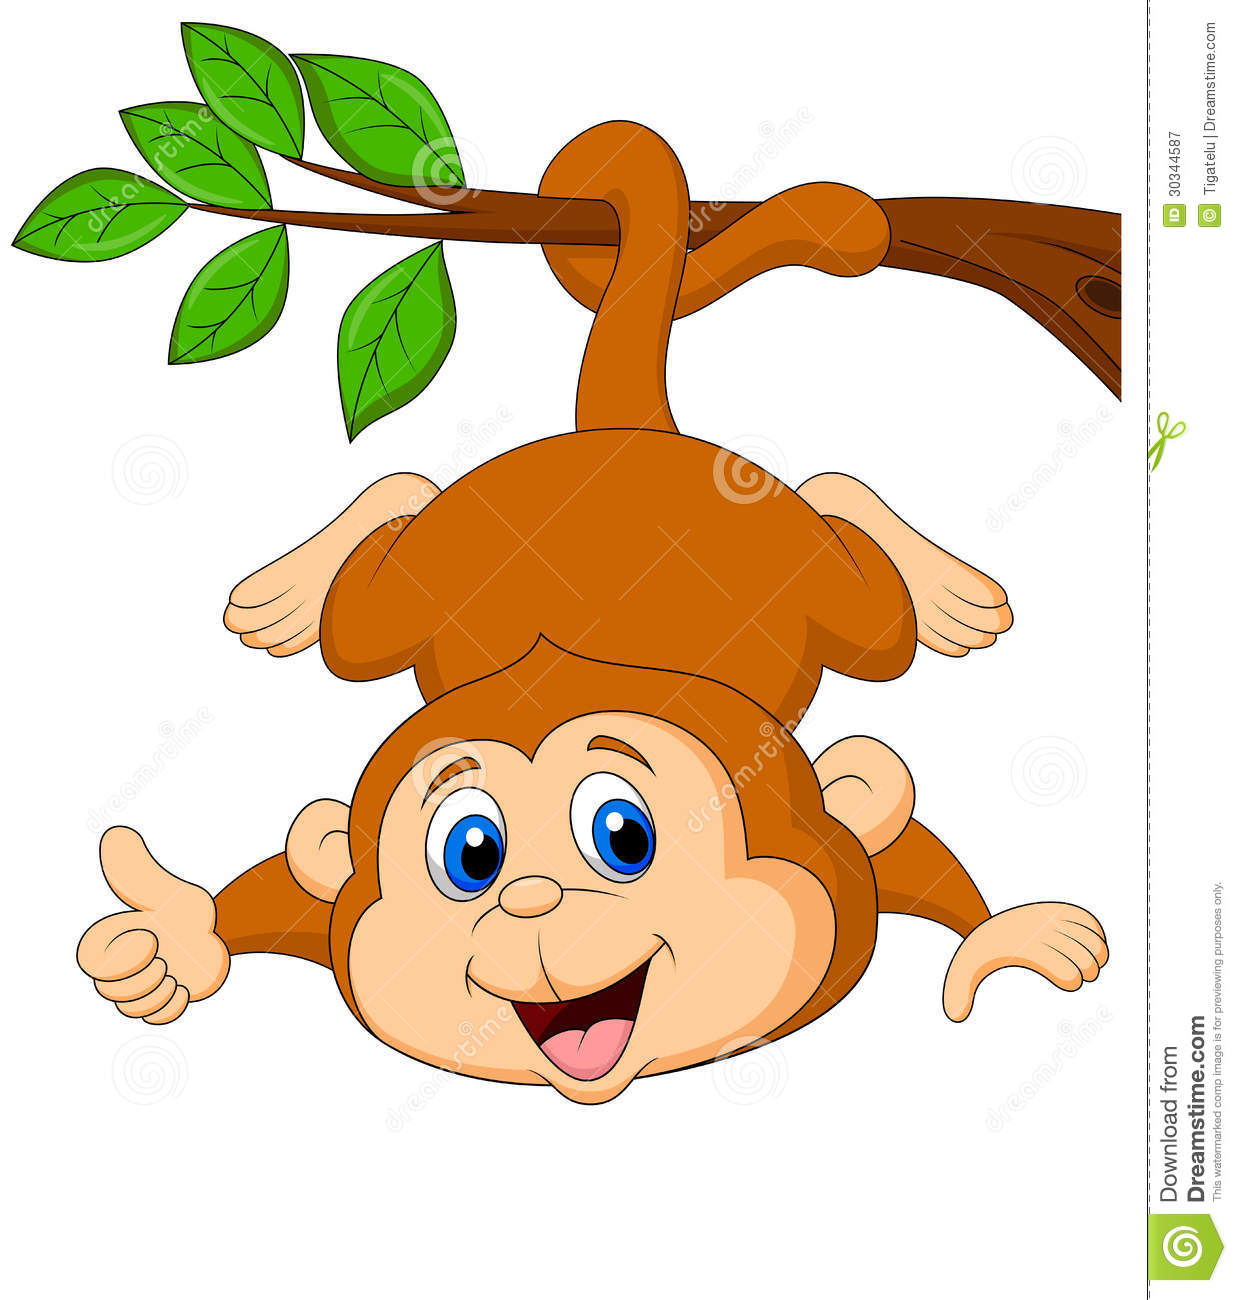 Images for simple cartoon monkey hanging - Cute Monkey Cartoon Hanging On A Tree Branch With Thumb Up Royalty Free Stock Photography